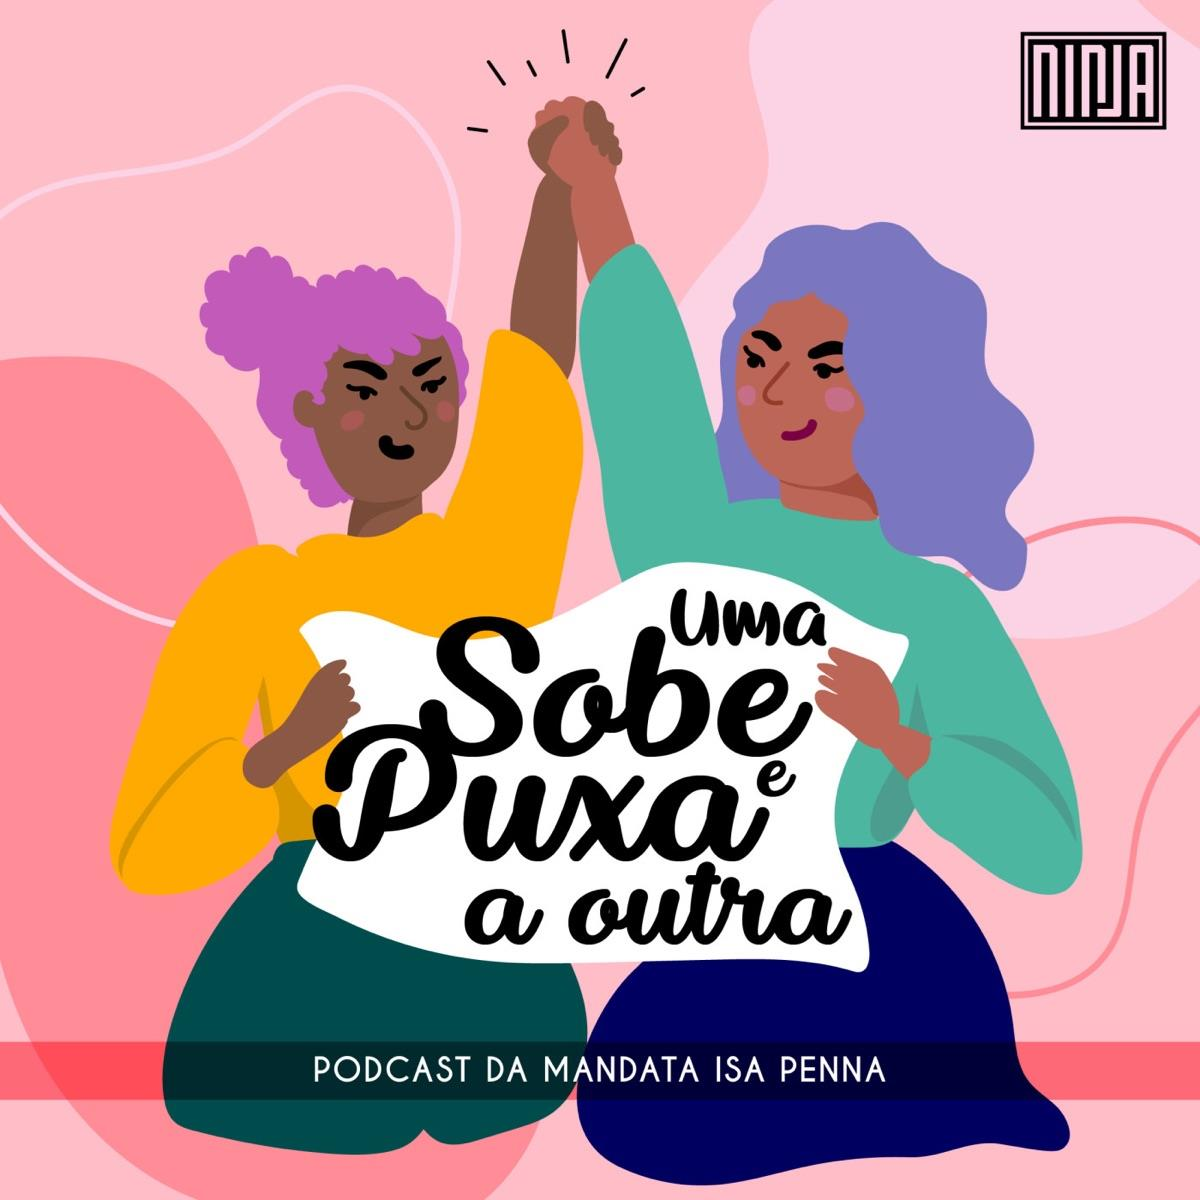 Isa Penna podcasts